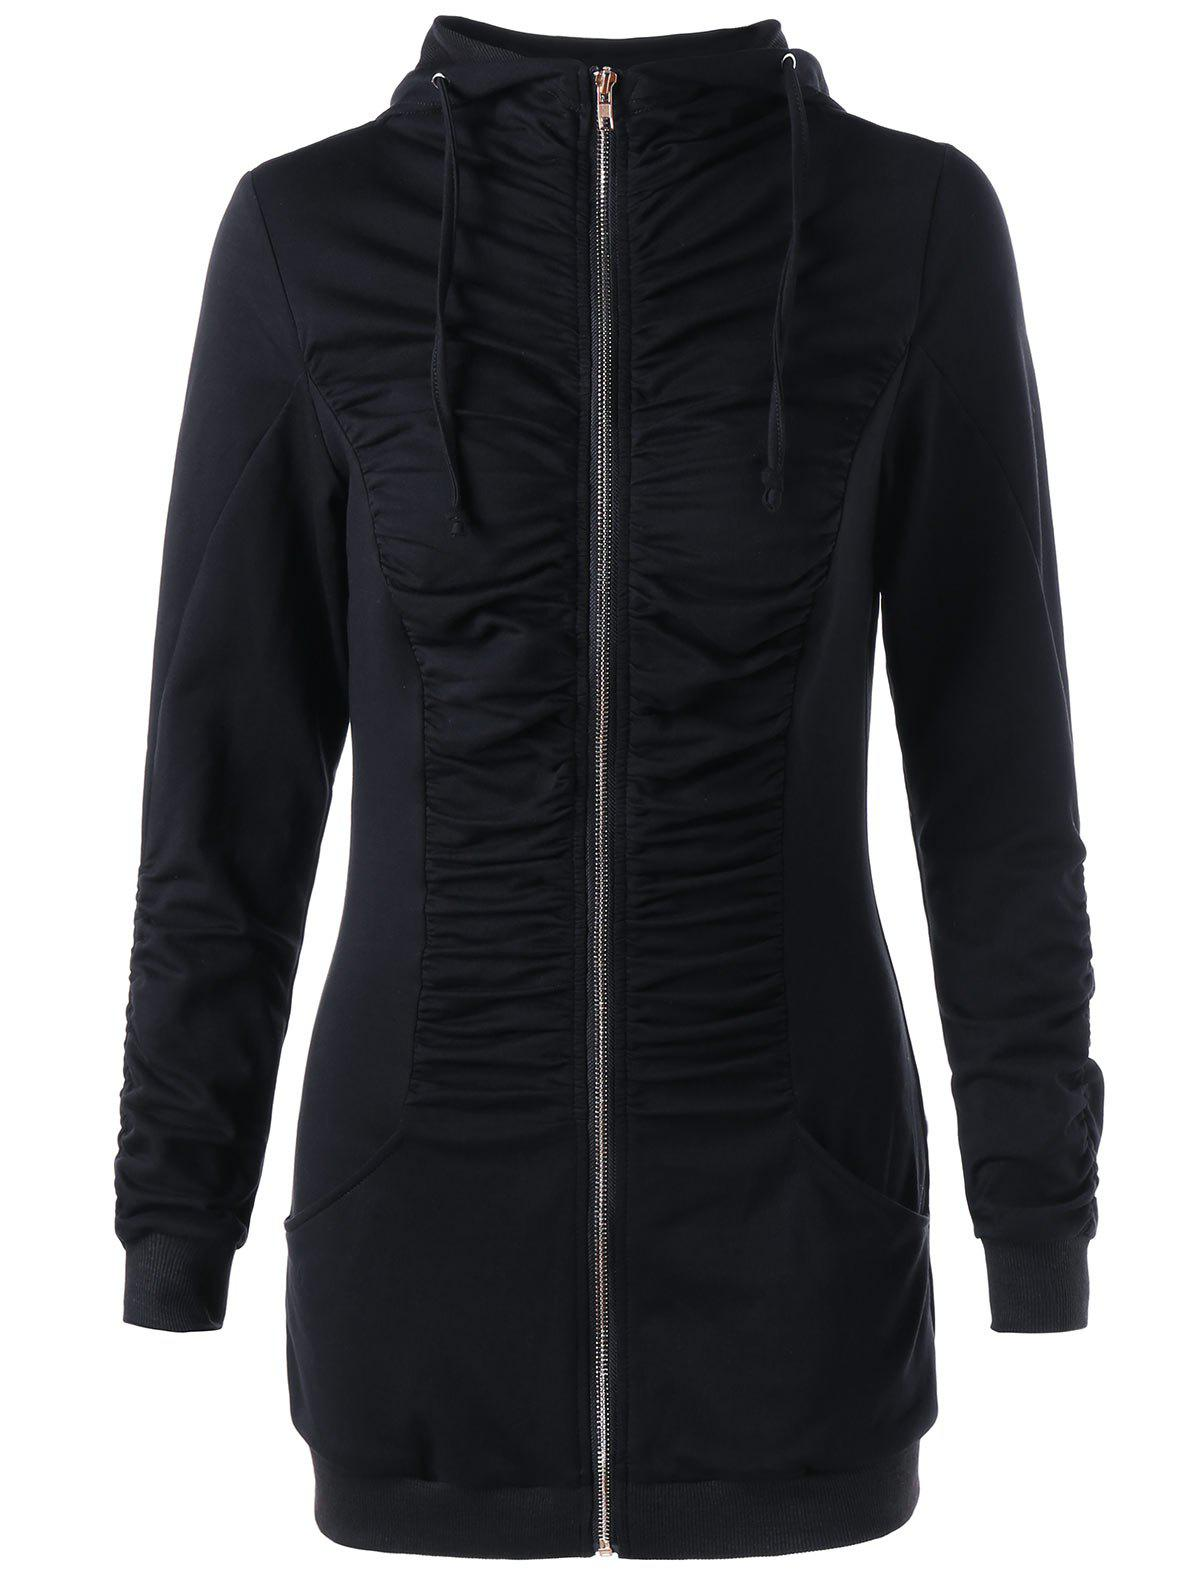 Ruched Zip Up Hoodie - BLACK 2XL